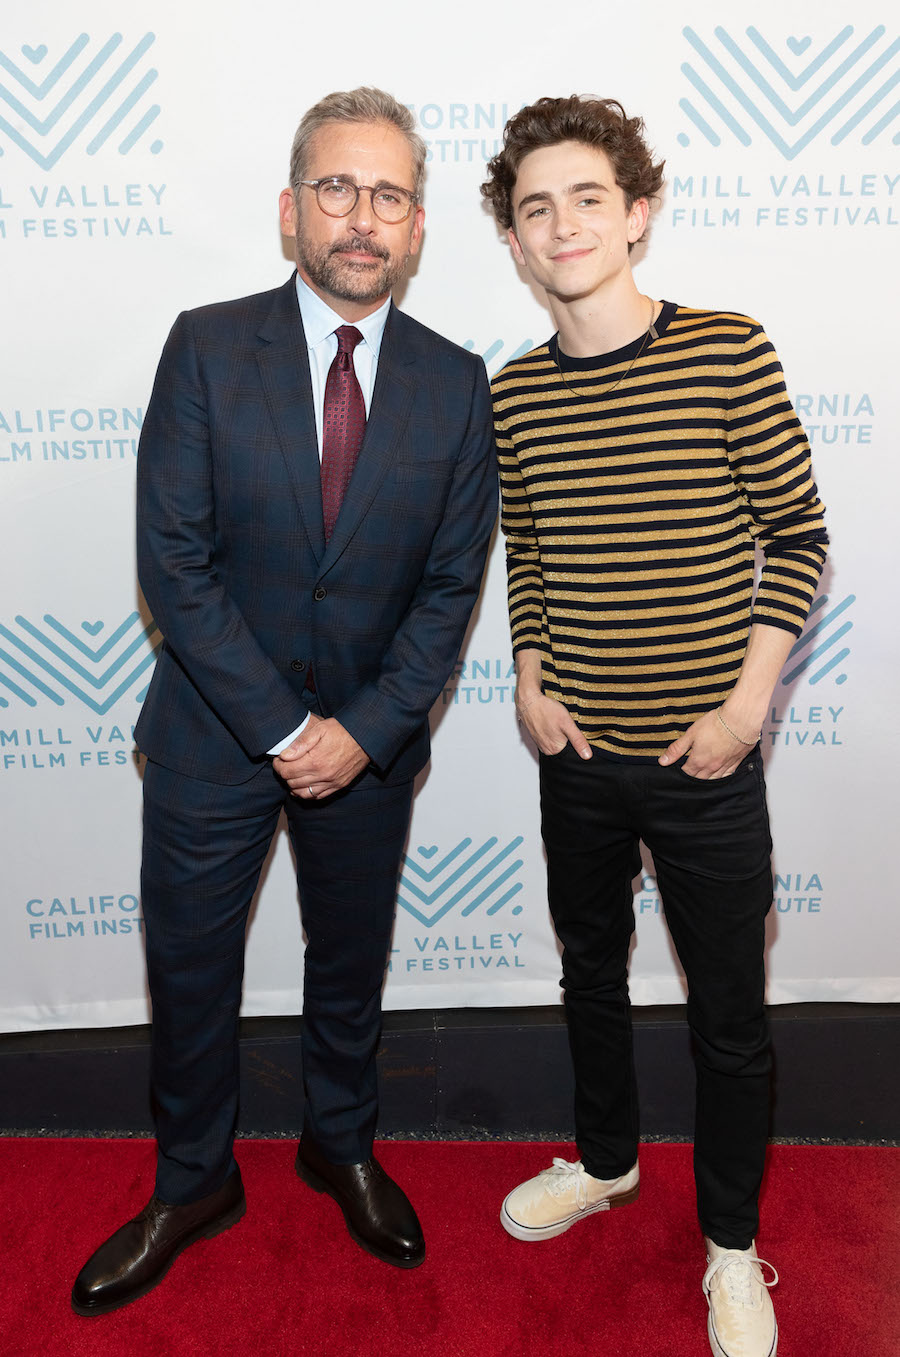 Steve Carell and Timothée Chalamet